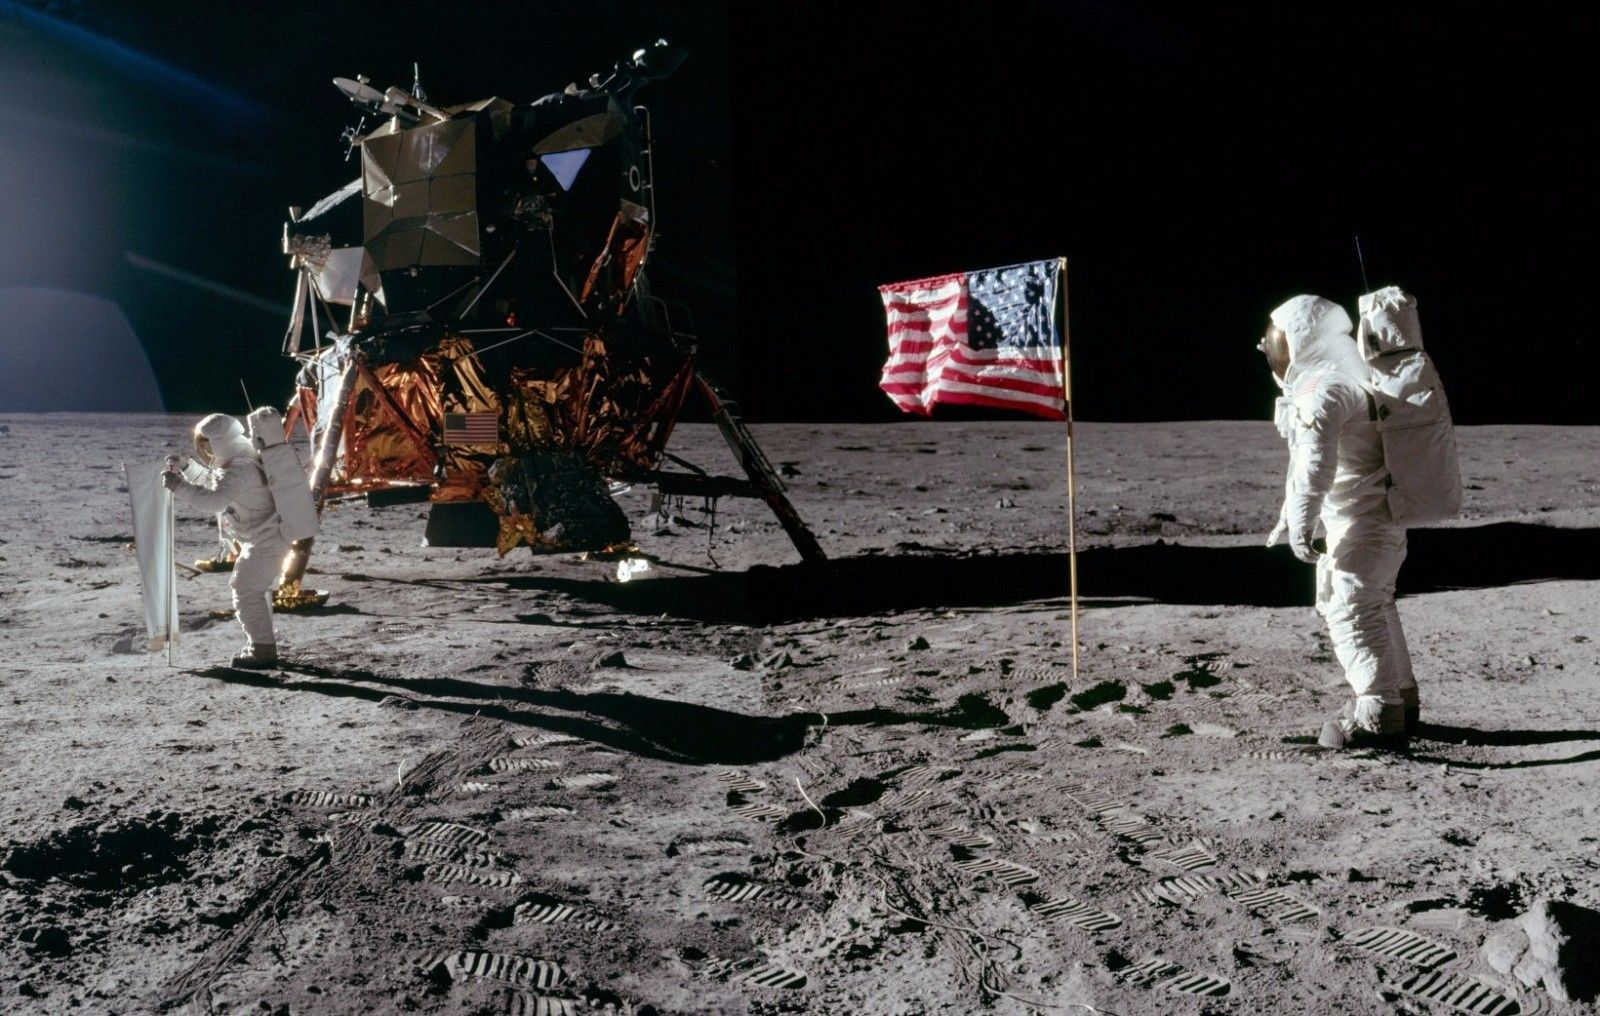 Astronauts photographed with U.S. flag and lunar command module on moon's surface.